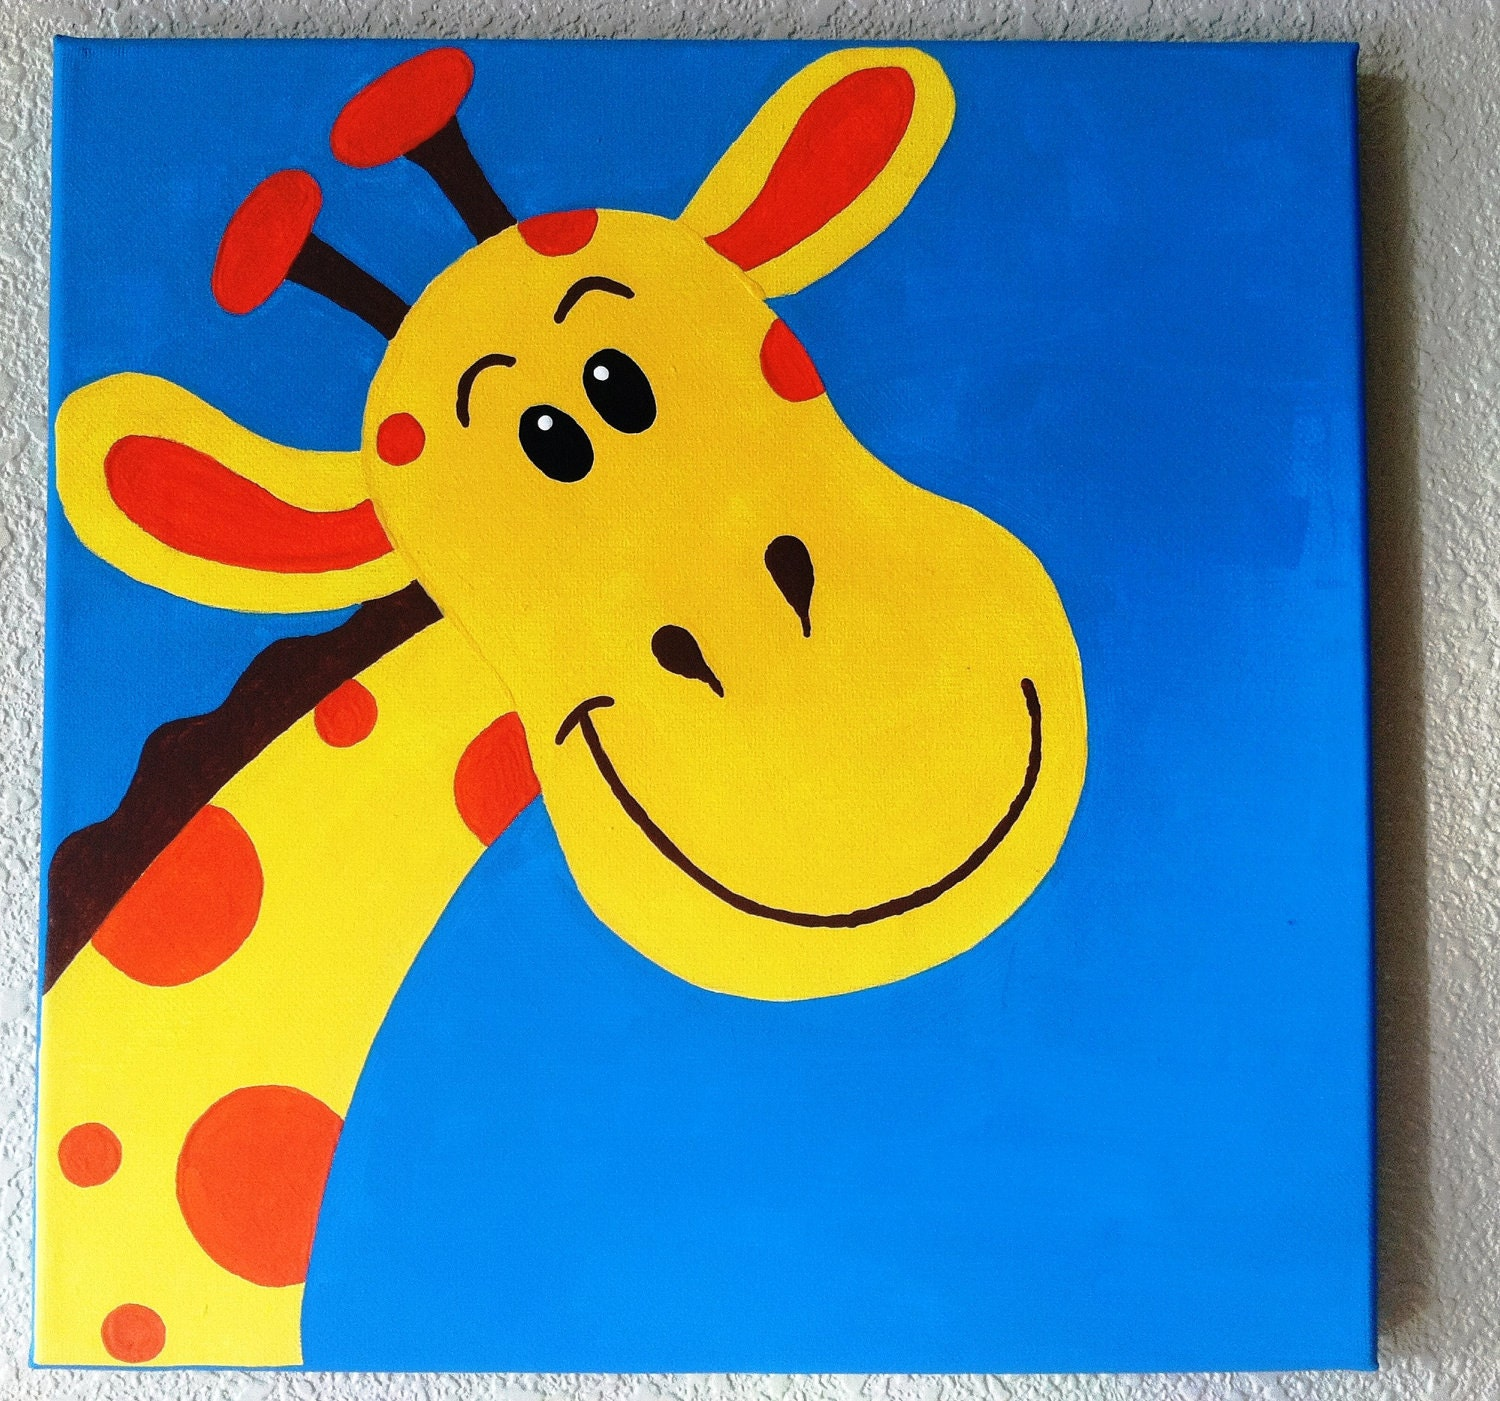 Cute Peekaboo Giraffe Handpainted Acrylic Painting On